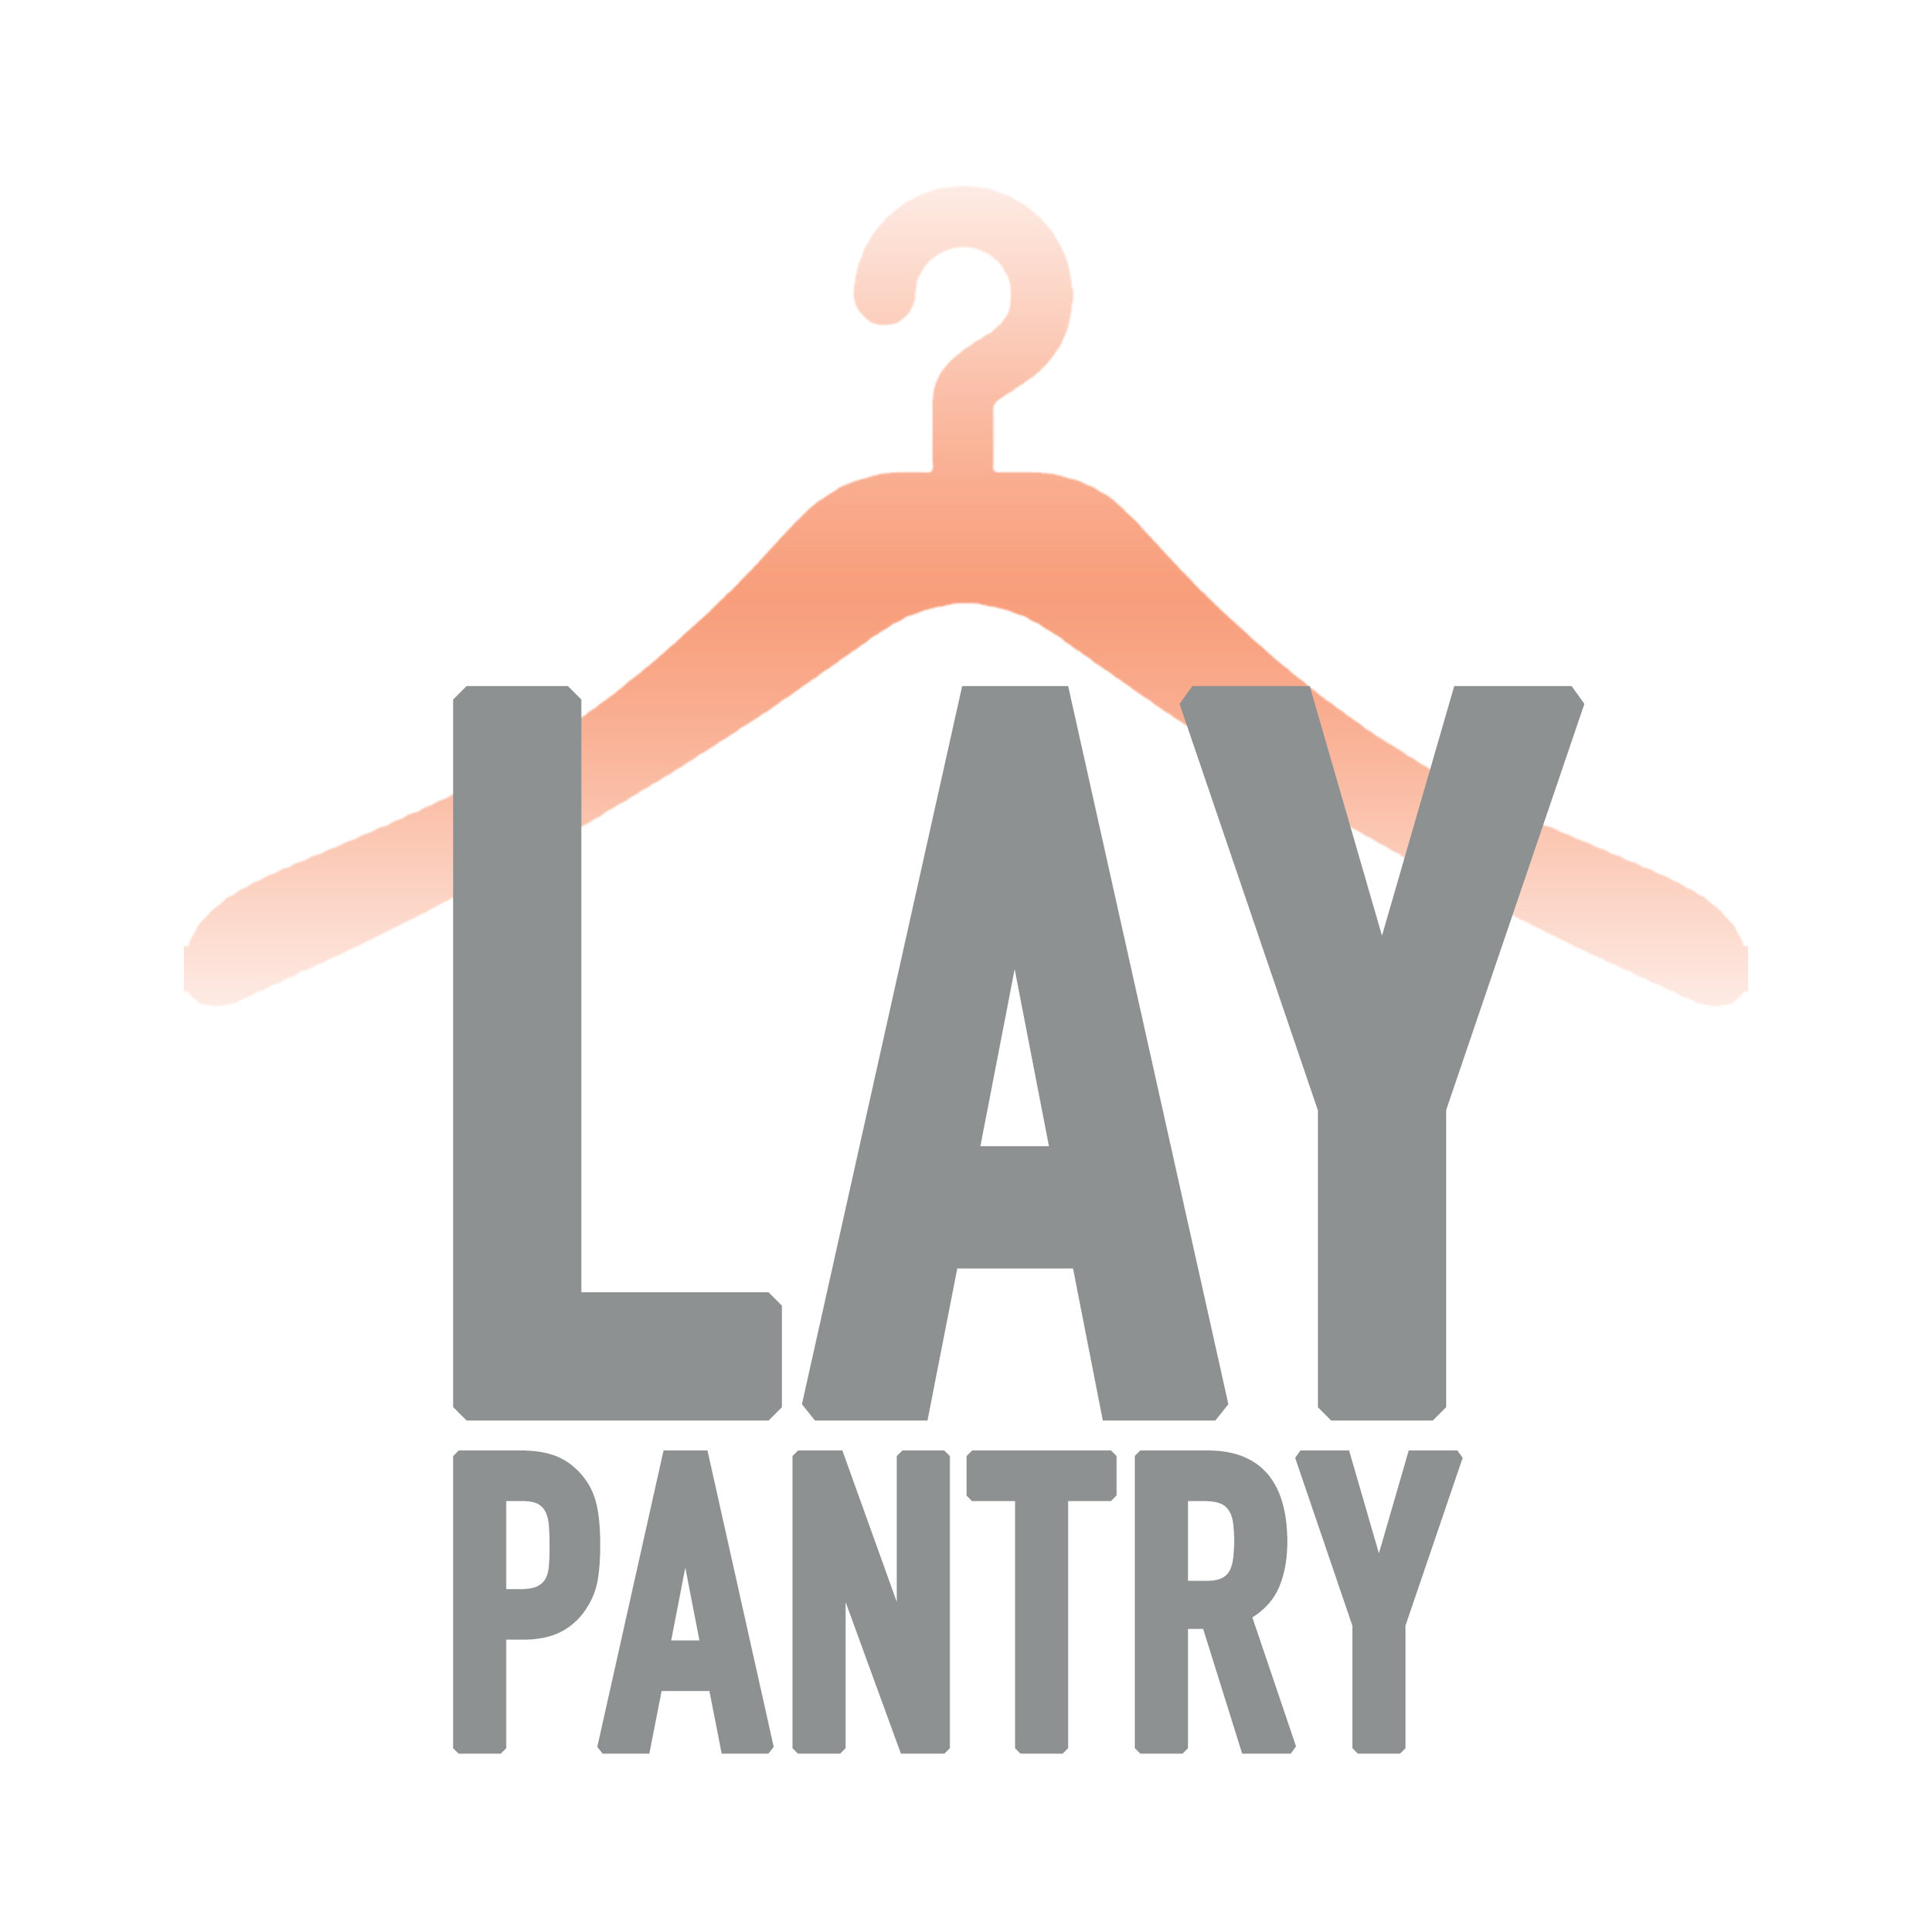 At Lay Pantry, it's A Different World. - Lay Pantry is a creative thrift and consignment pop-up boutique. This mobile thrift store was curated with college students in mind who appreciate the affordability and multi-faceted, creative experience that thrifting brings!The Better Give Back Foundation is a proud partner of Lay Pantry. Clothing donations made to our non-profit will serve as a resource for intermediate, high school, college students, and families of this space.Your support to this initiative helps close the gap of student access and affordability barriers.